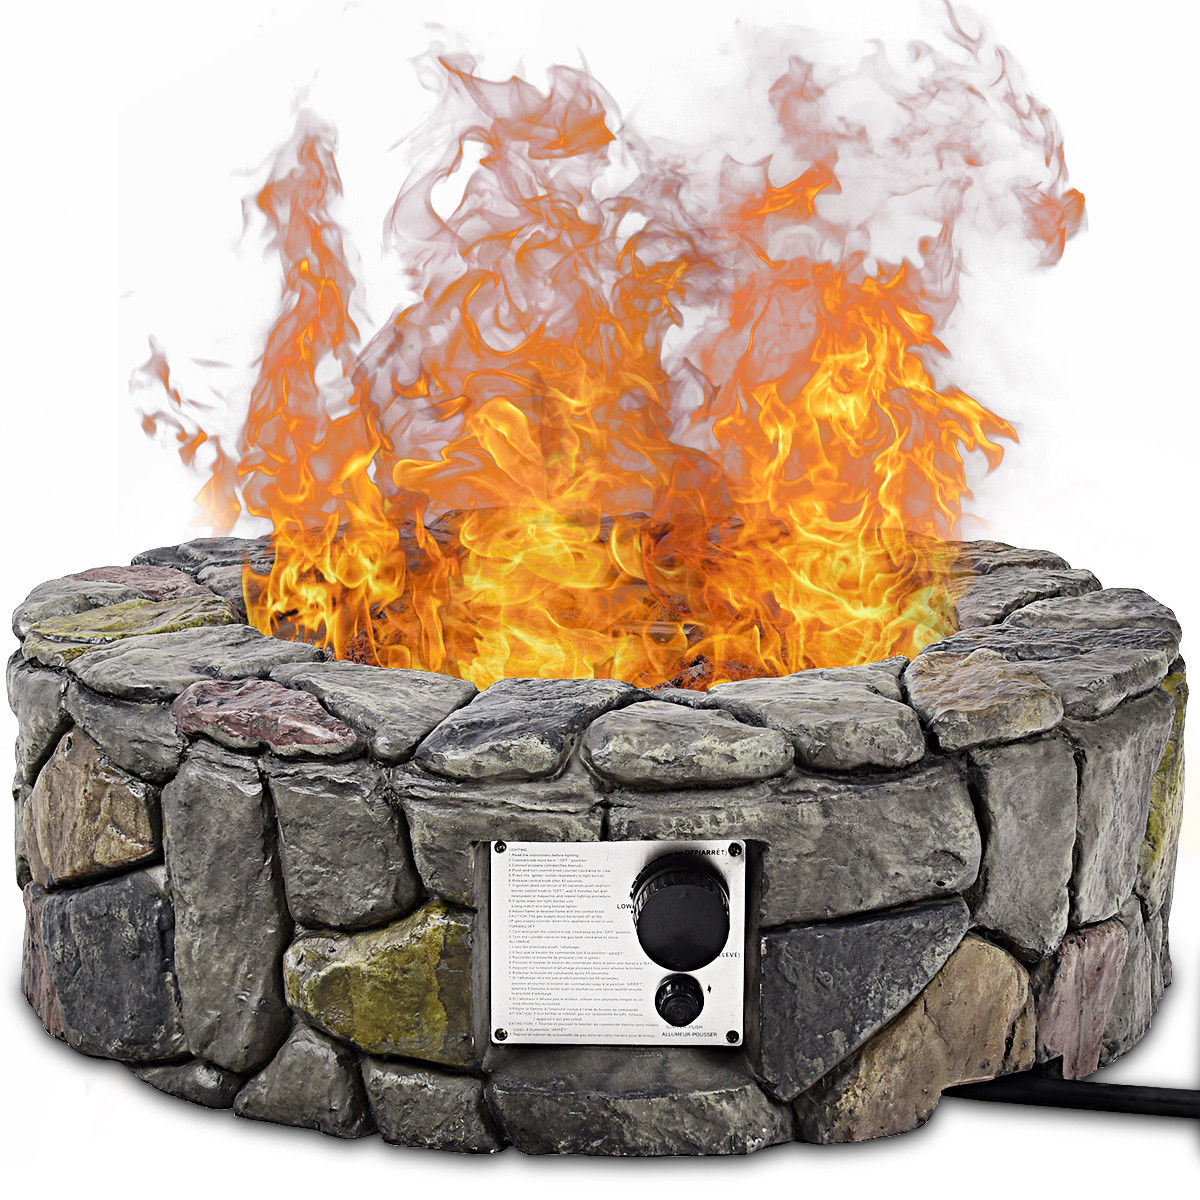 Costway 28'' Propane Gas Firepit Outdoor 40,000 BTUs Stone Finish Lava Rocks Cover by Costway